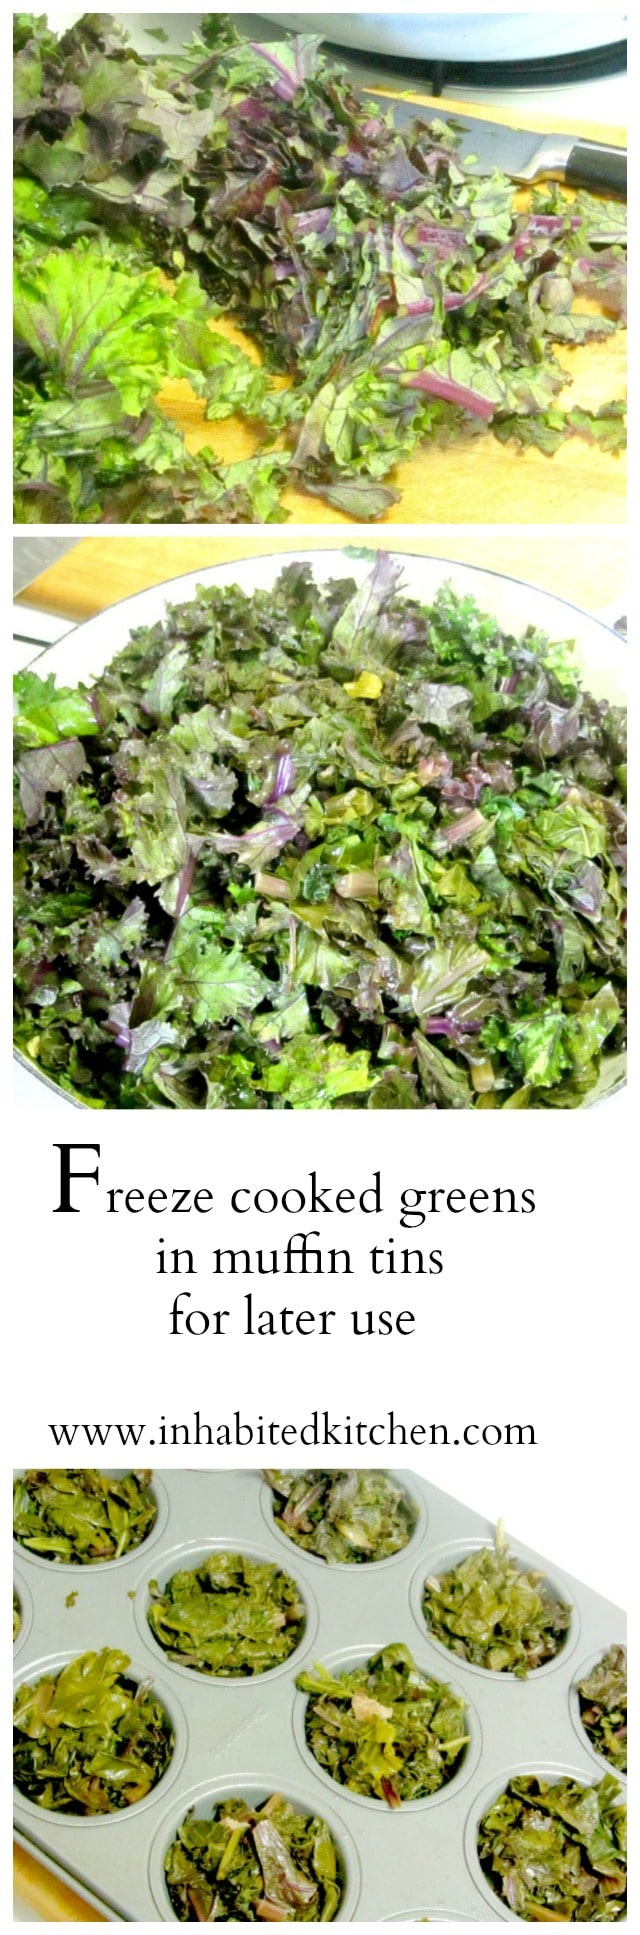 Freeze cooked greens - leftovers or cooked for the purpose - in muffin tins, for convenient single serving sized pieces. www.inhabitedkitchen.com